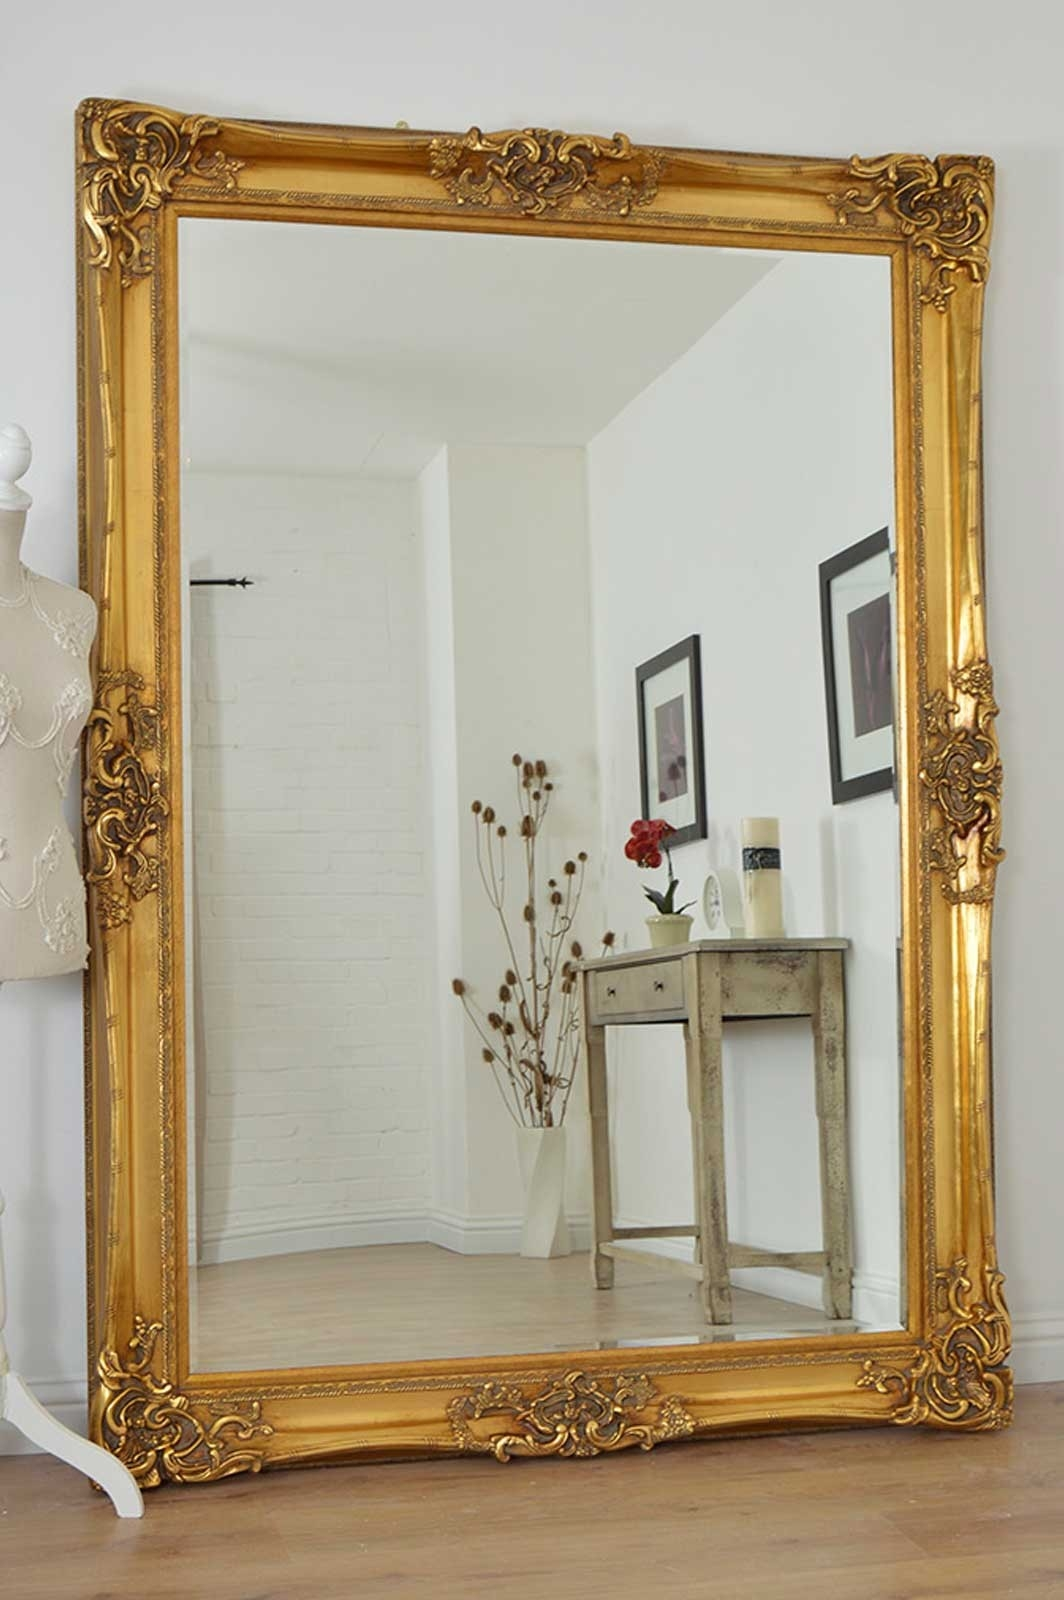 Large Gold Very Ornate Antique Design Wall Mirror 7ft X 5ft 213cm Regarding Old Fashioned Mirrors For Sale (Image 12 of 15)